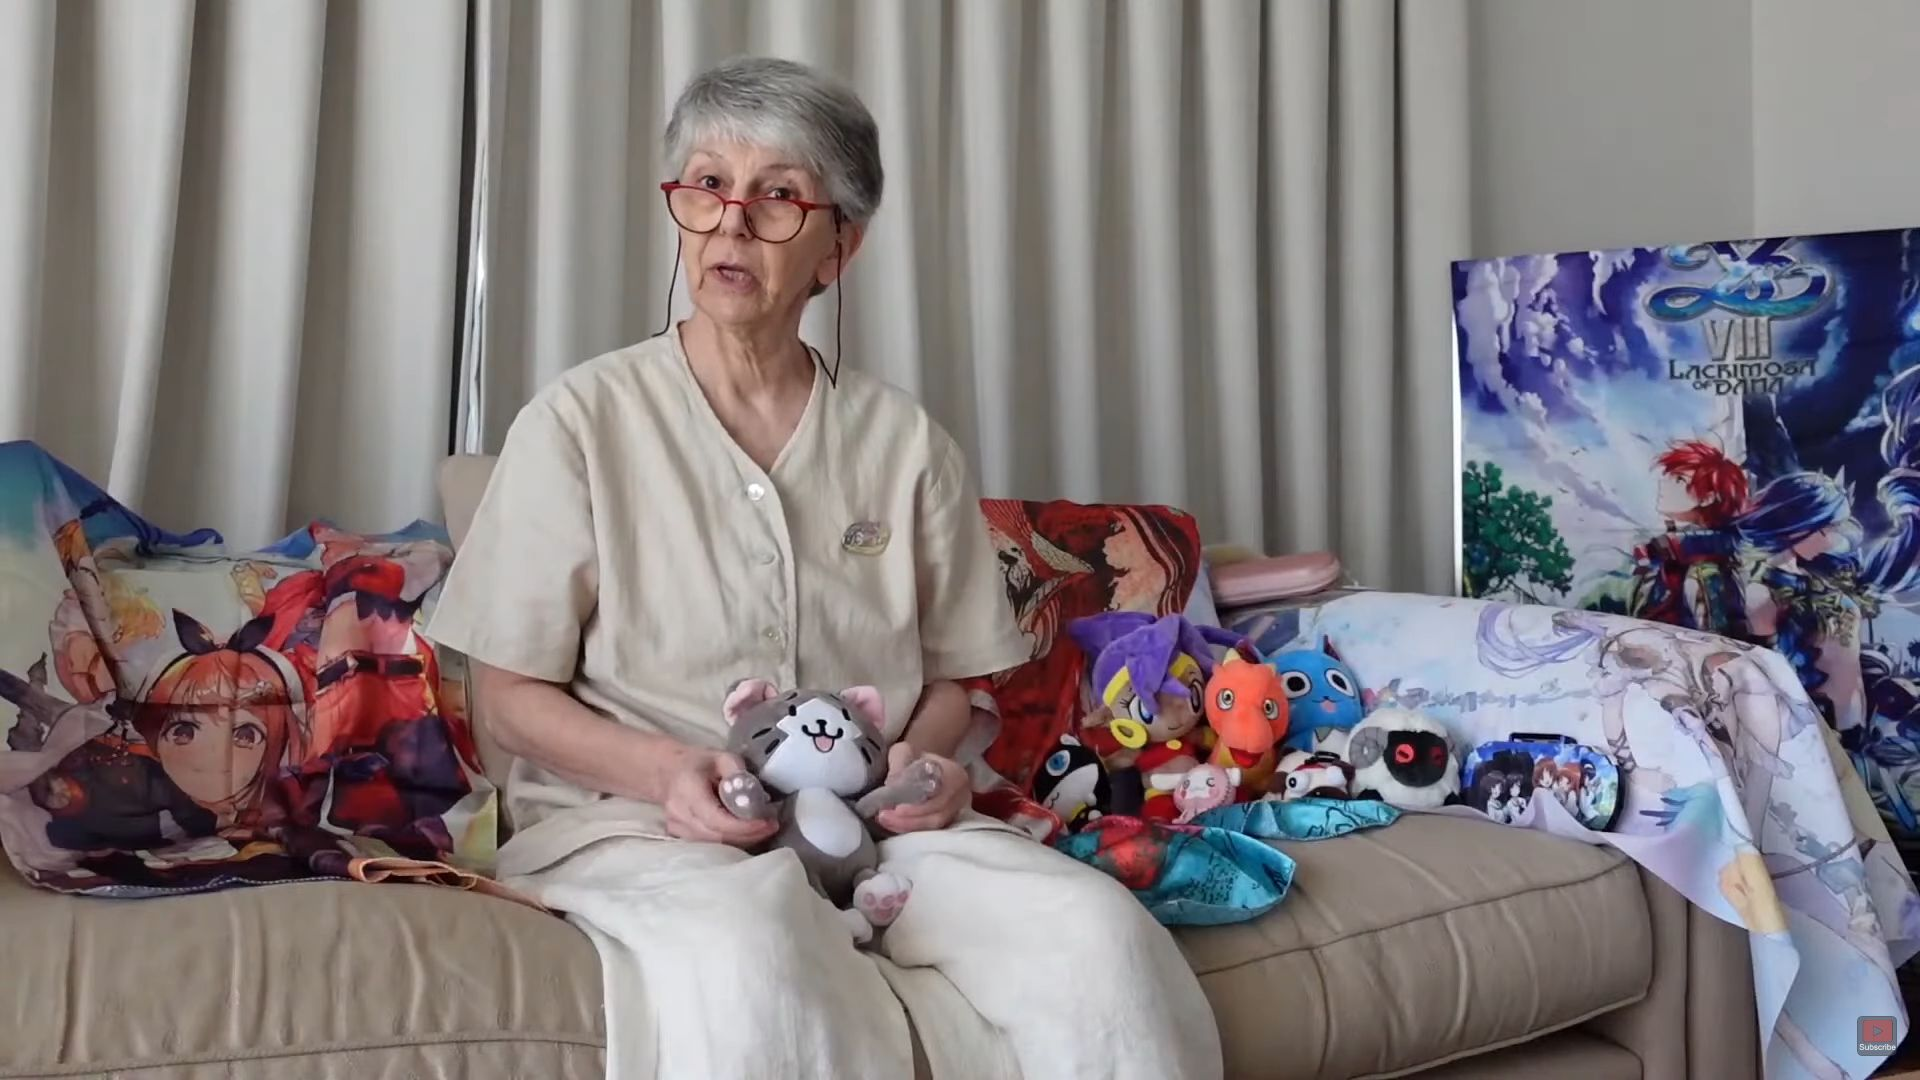 Dame Britta, surrounded by her anime merchandise